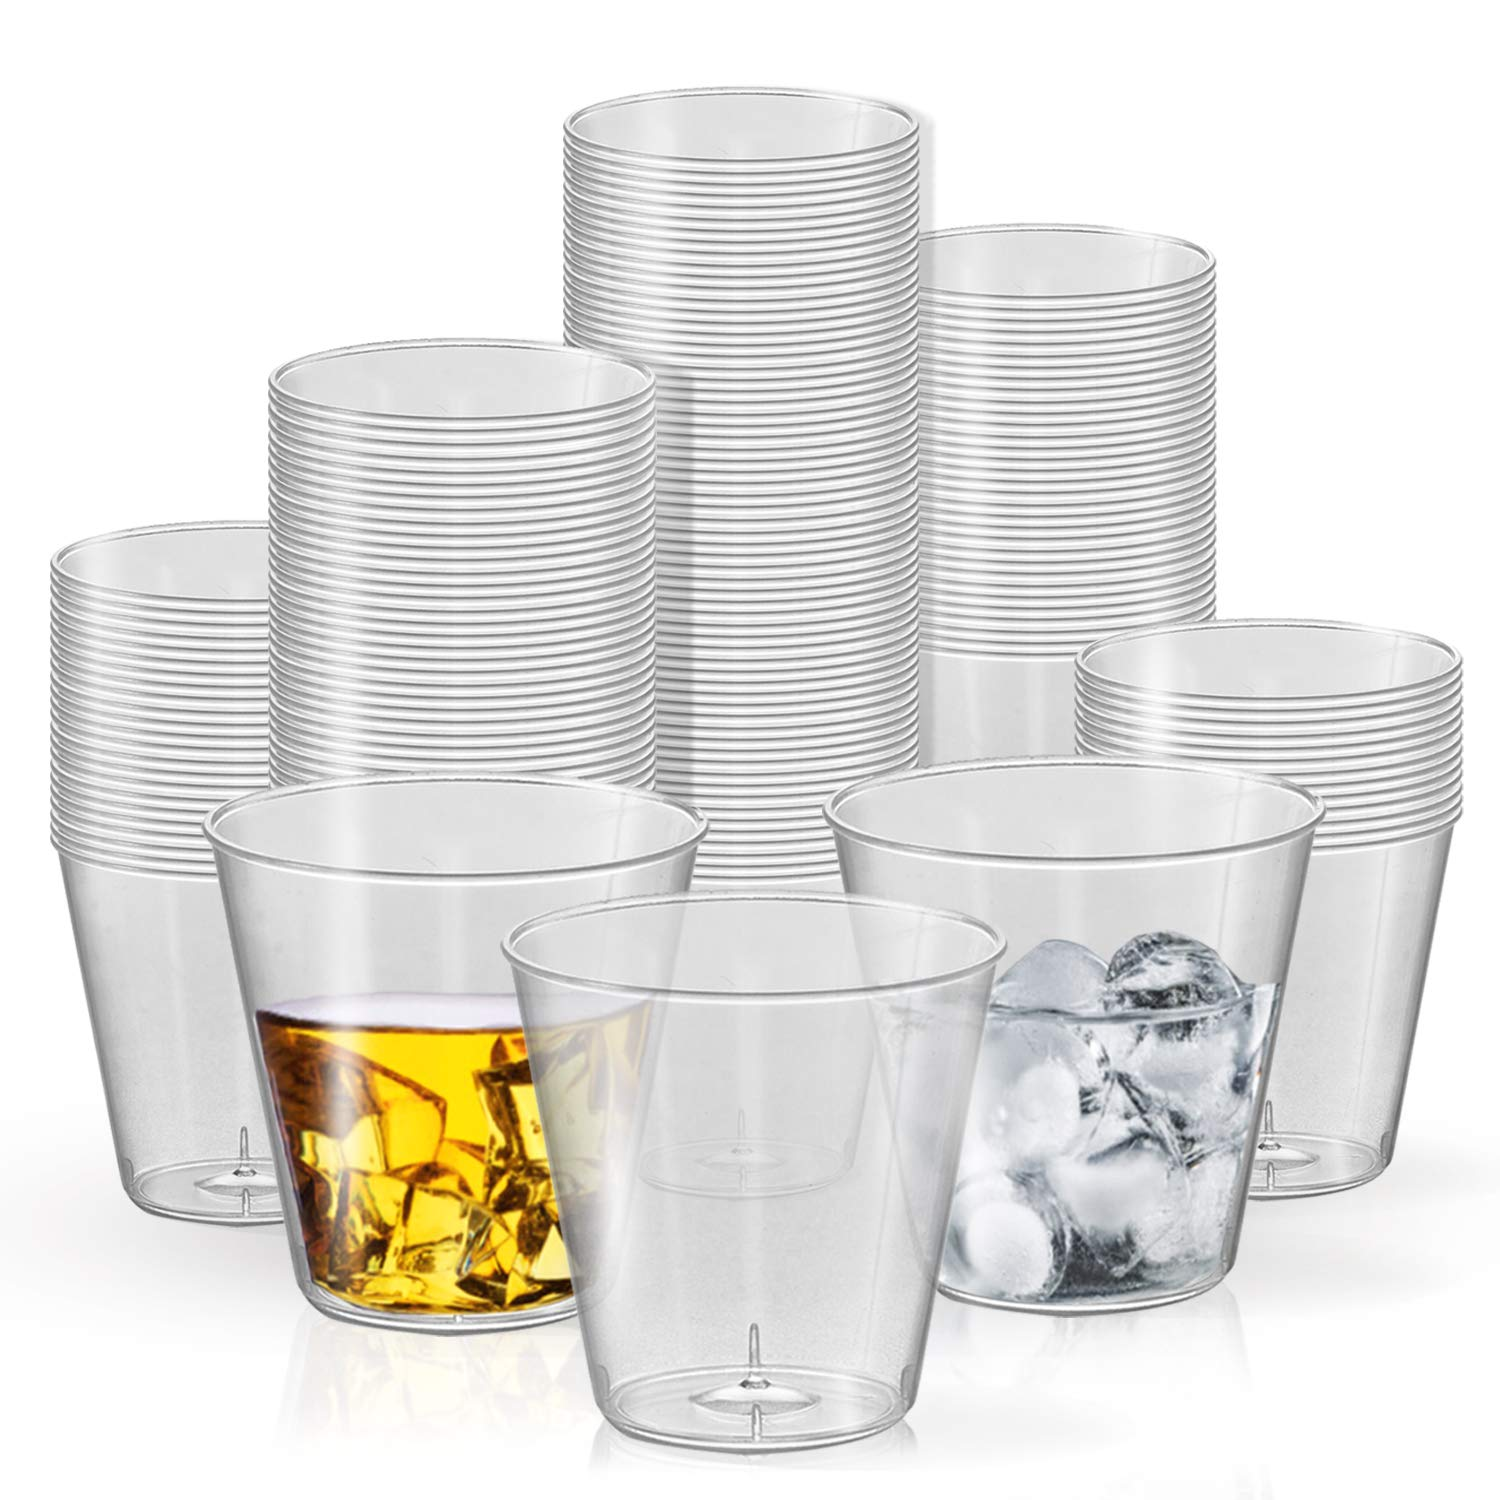 Disposable Plastic Shot Glasses - 2500 Pcs Hard Plastic Clear Shot Glasses - 1 oz Punch Cups - Bulk Party Cup Supplies - Cocktail Drinking Party Cups for Weddings, Birthday Parties & Other Occasions by Smarty Had A Party